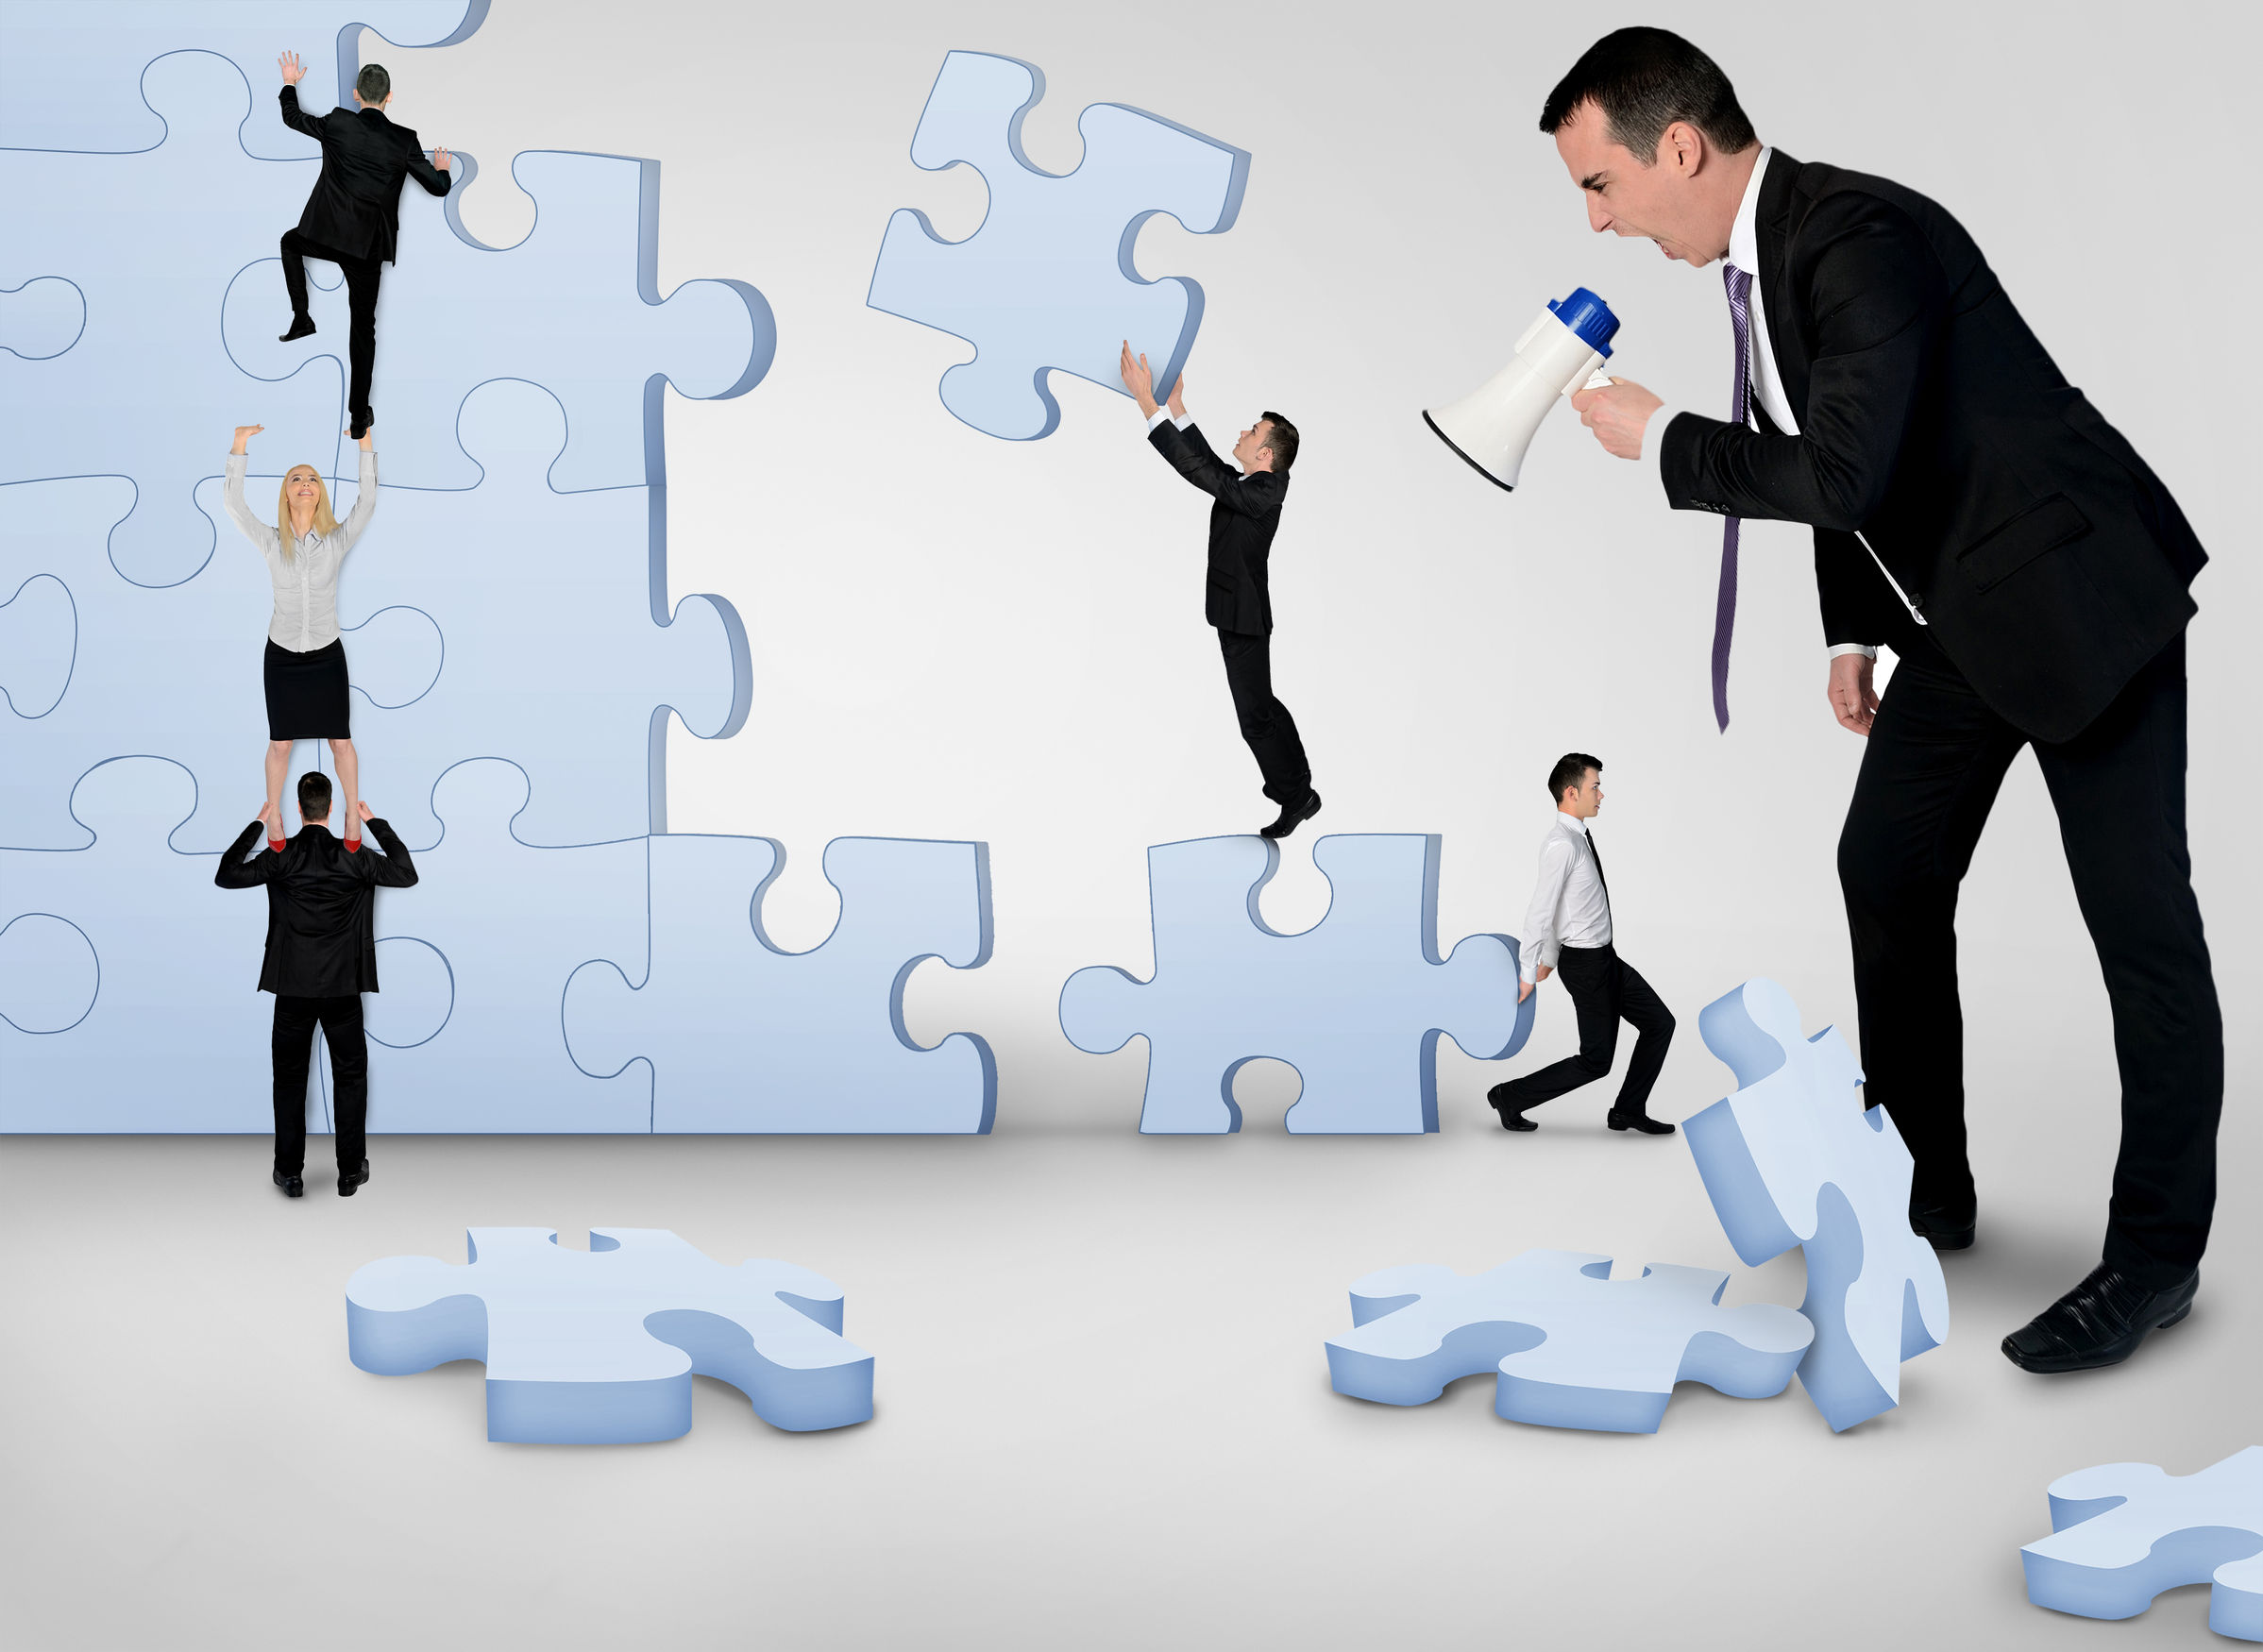 41654967 - business team building puzzle pieces together